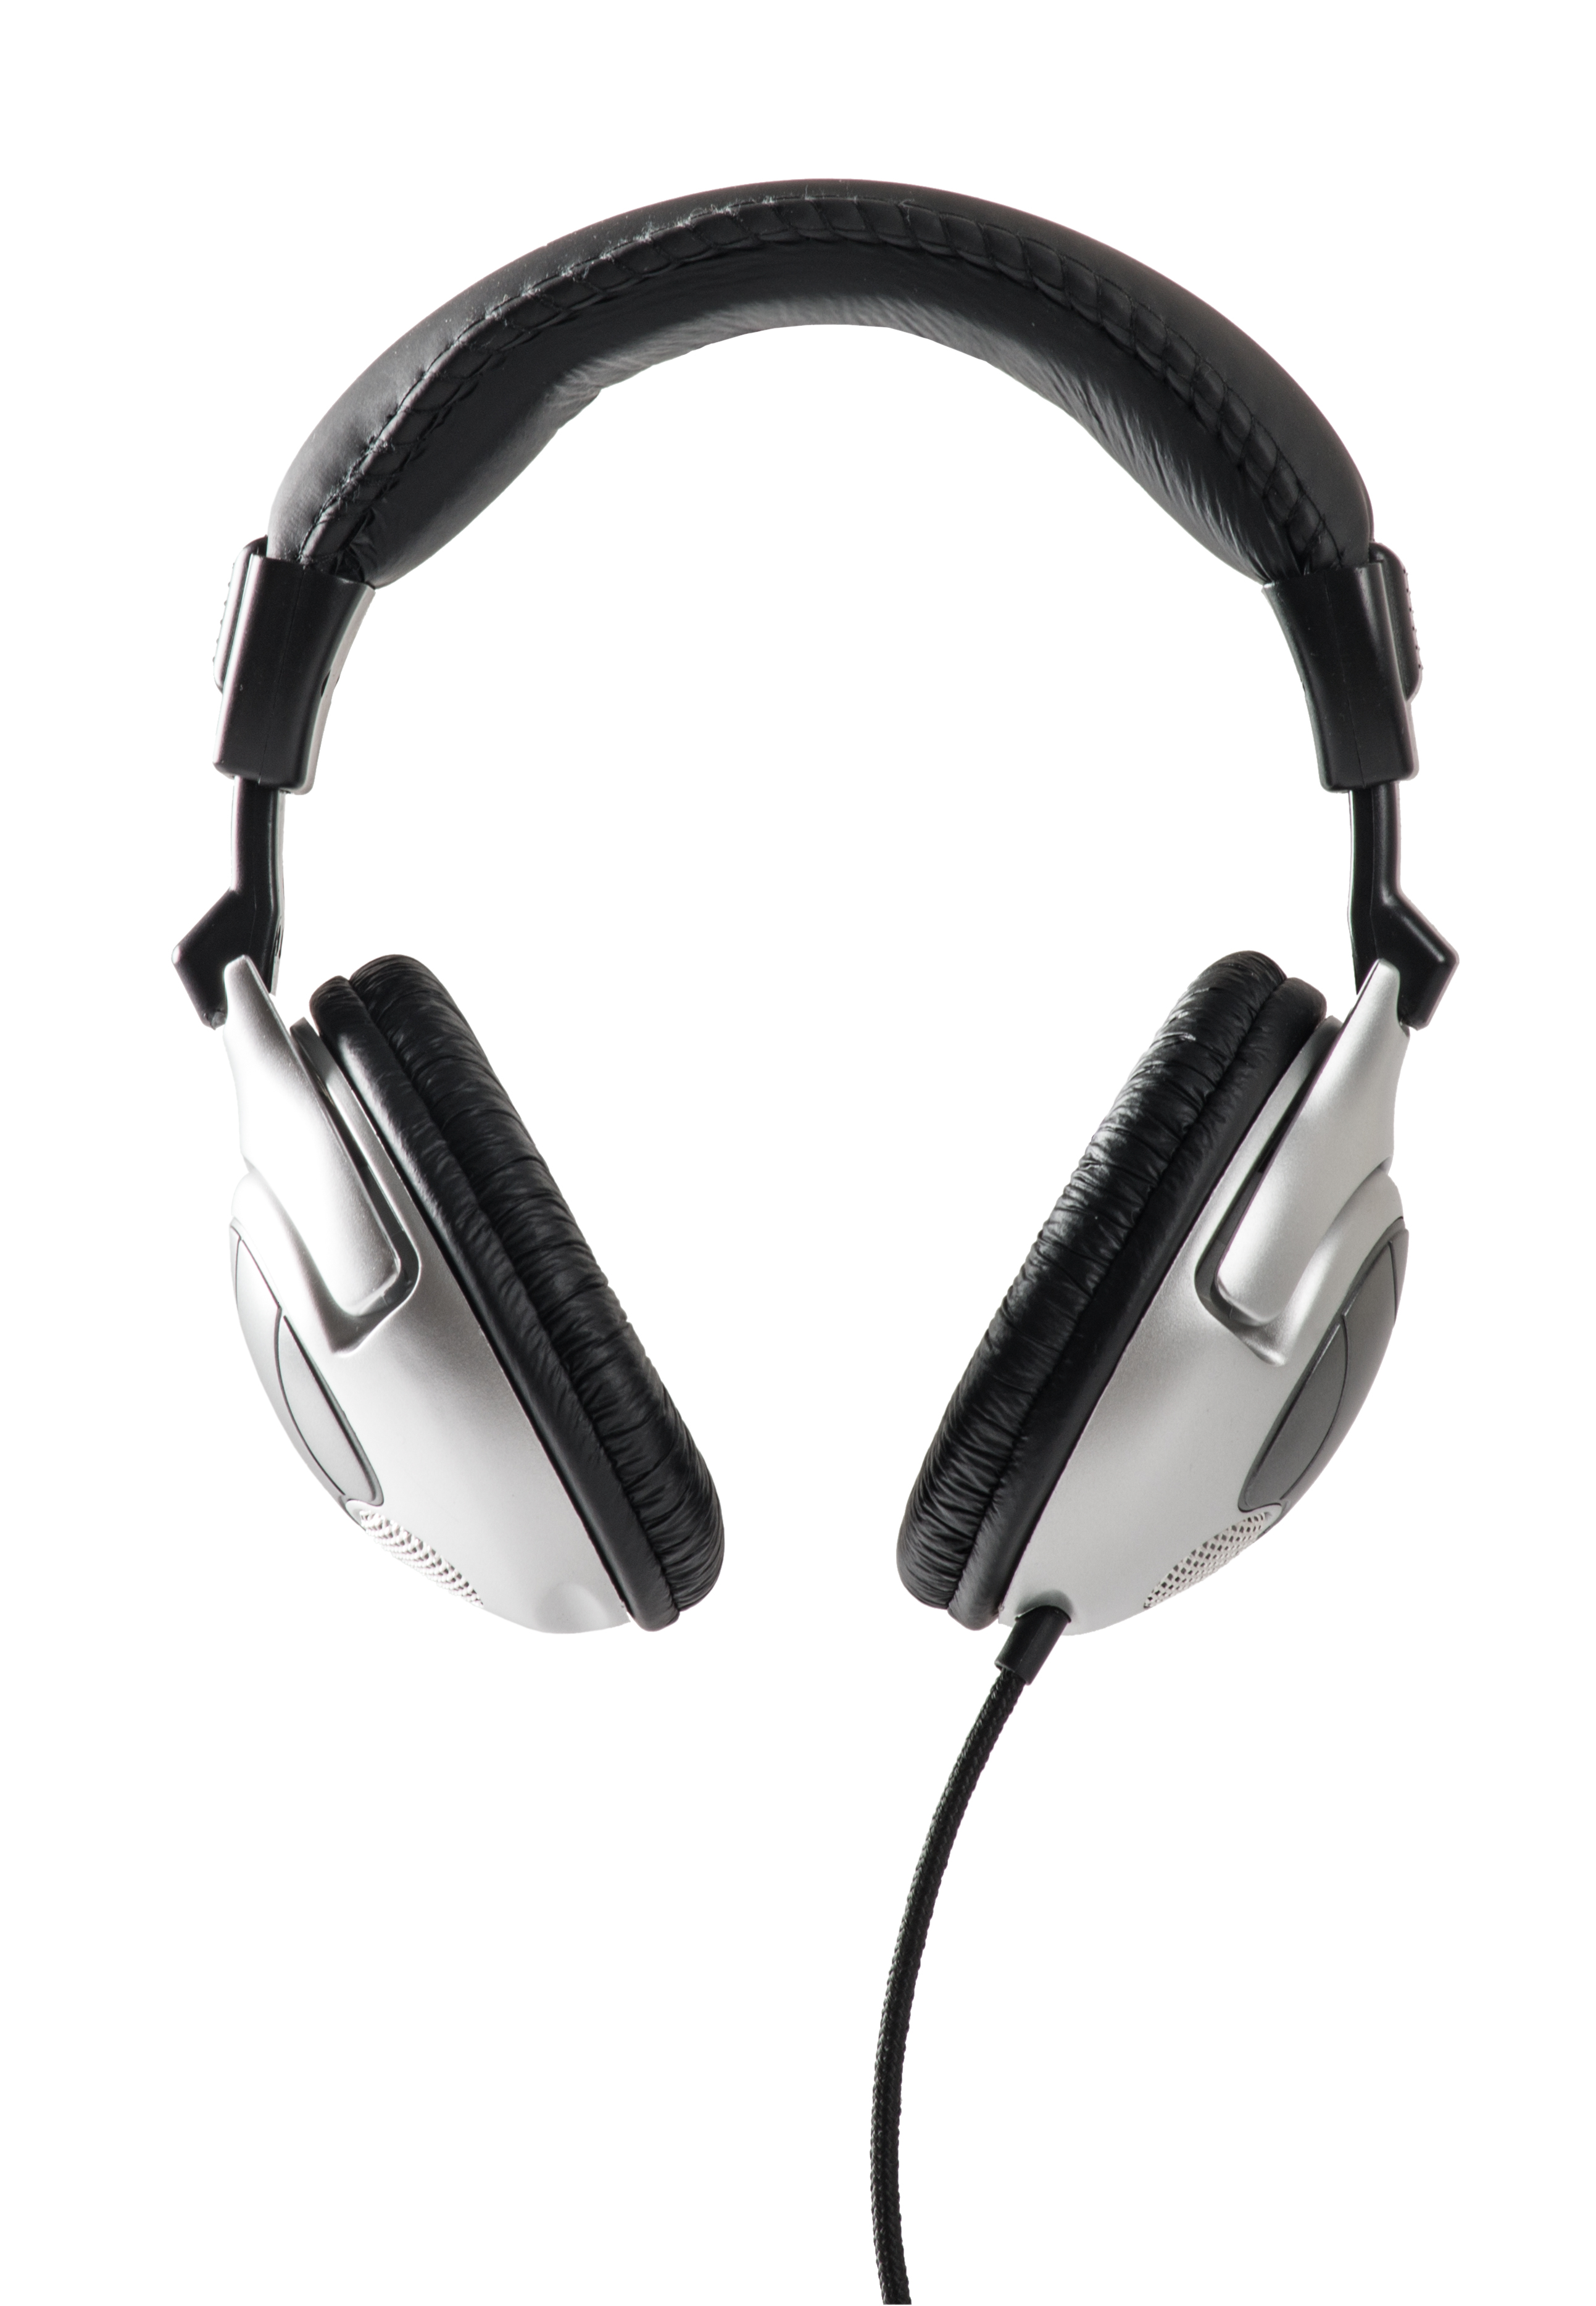 Headphone Proel HFC25 Compact Closed Back Dynamic Headphone